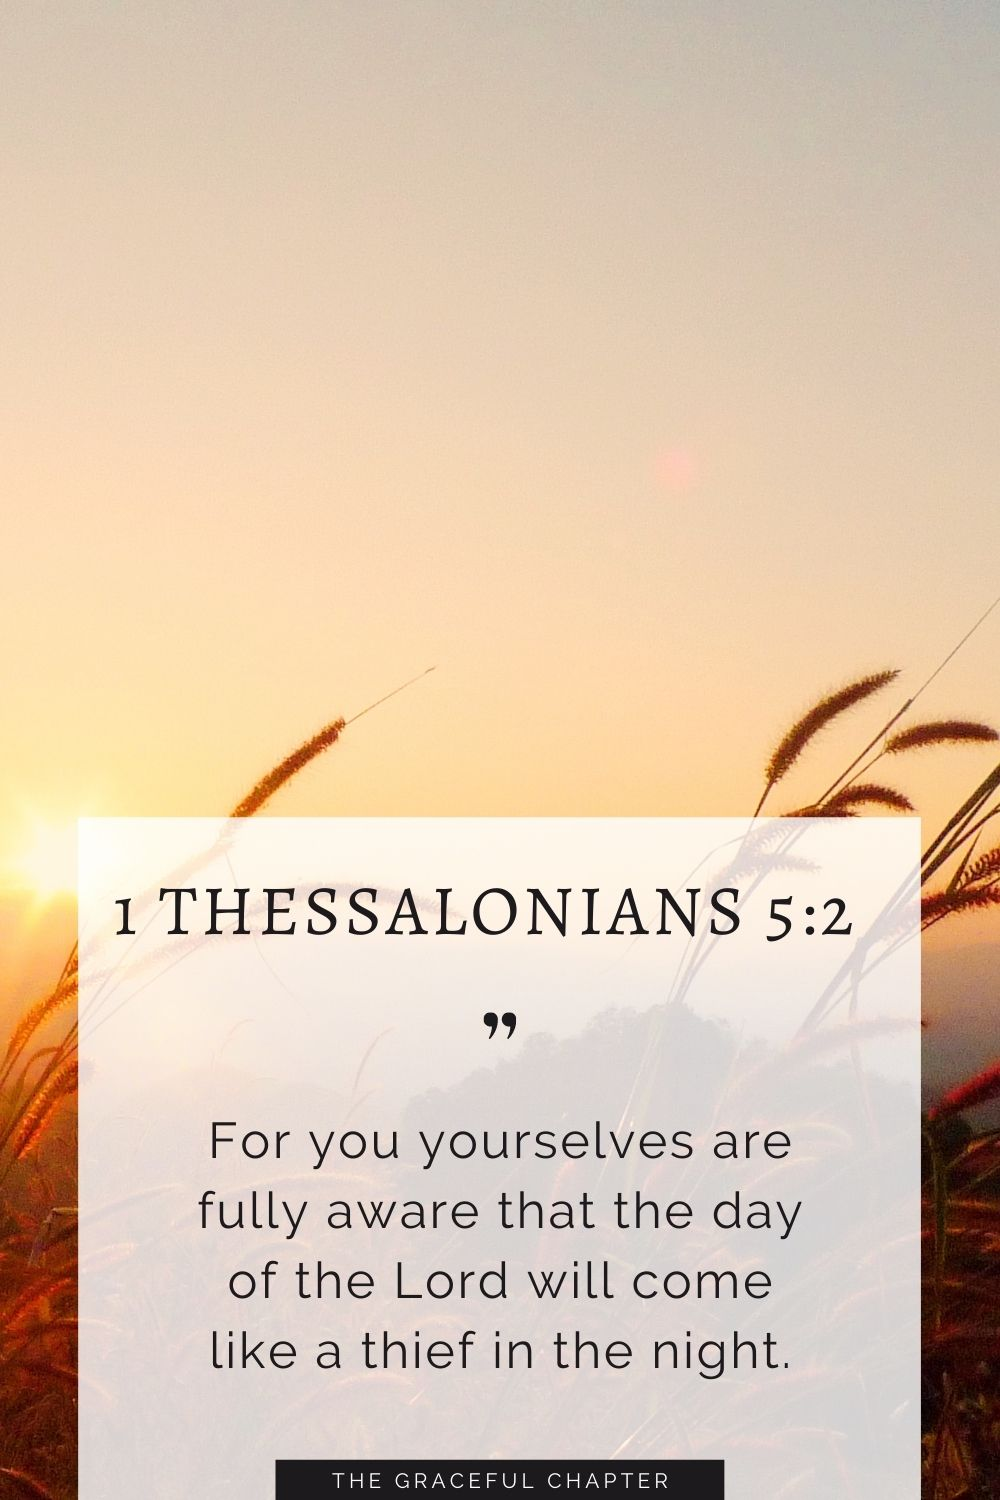 For you yourselves are fully aware that the day of the Lord will come like a thief in the night. 1 Thessalonians 5:2